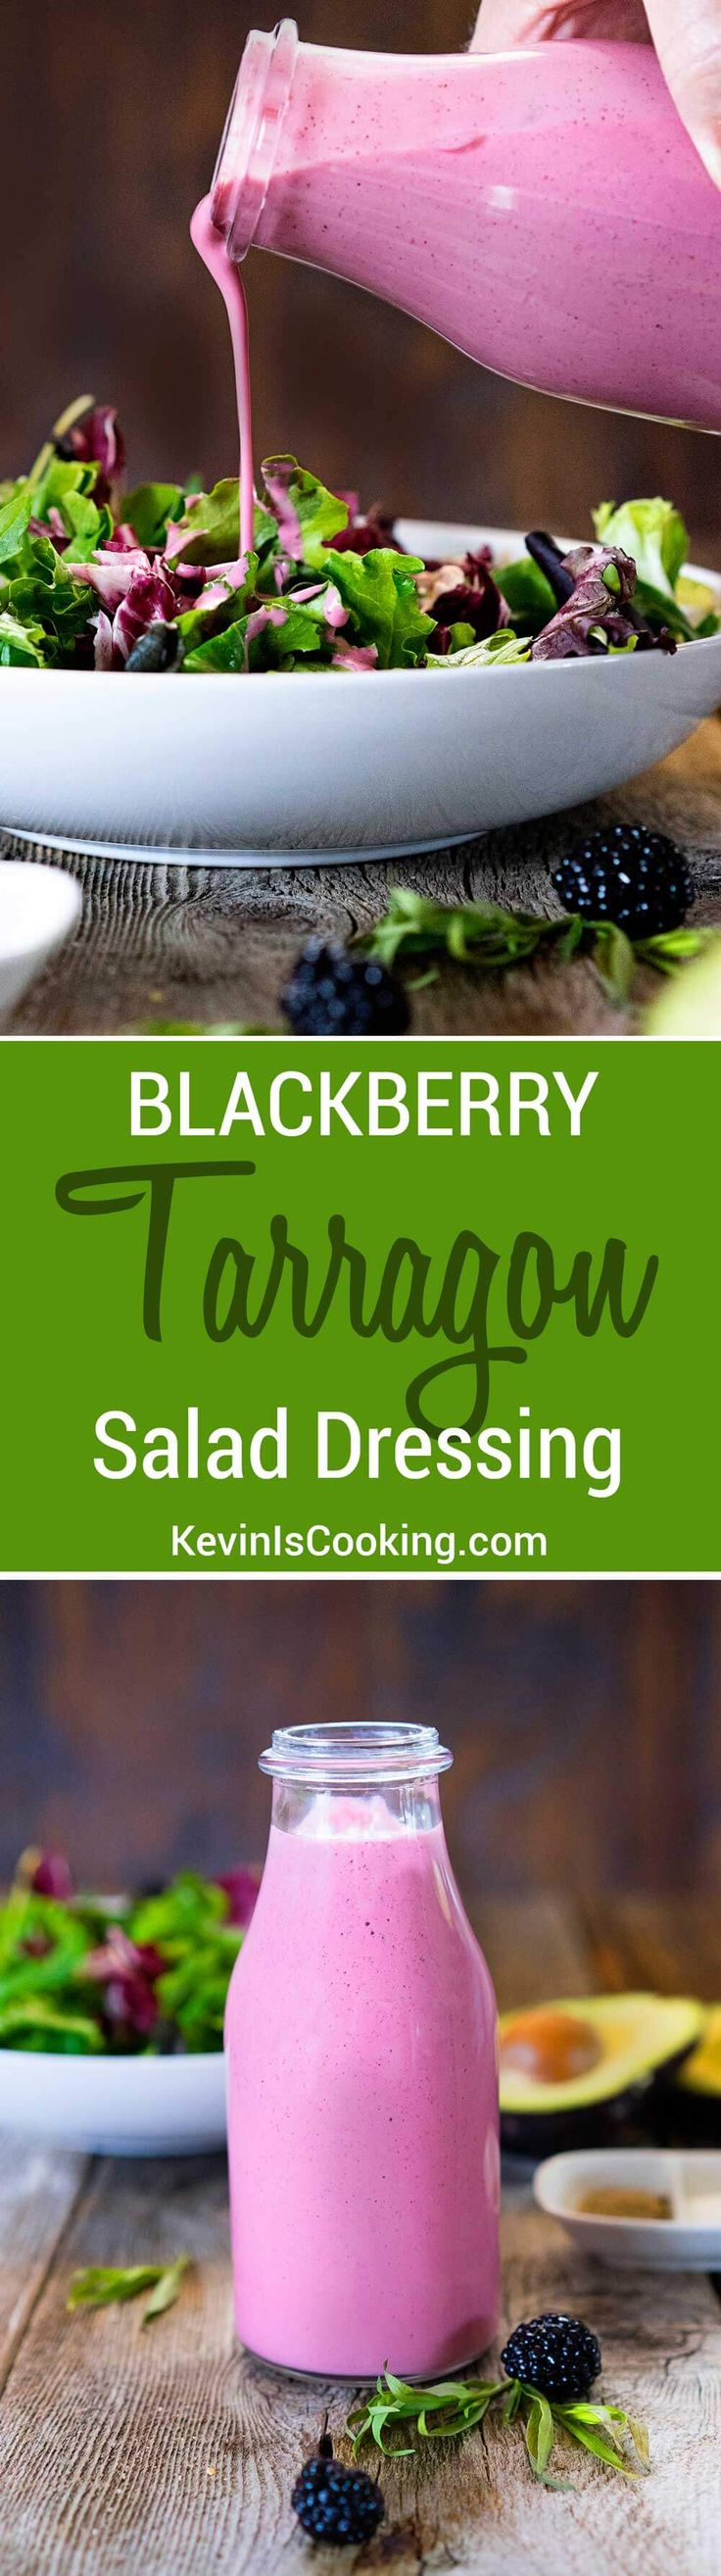 From the fruity blackberry flavor to the tartness of the Greek yogurt and herbal tarragon note, this Blackberry Tarragon Salad Dressing easily peps up the dullest of salads. One use over and over again!